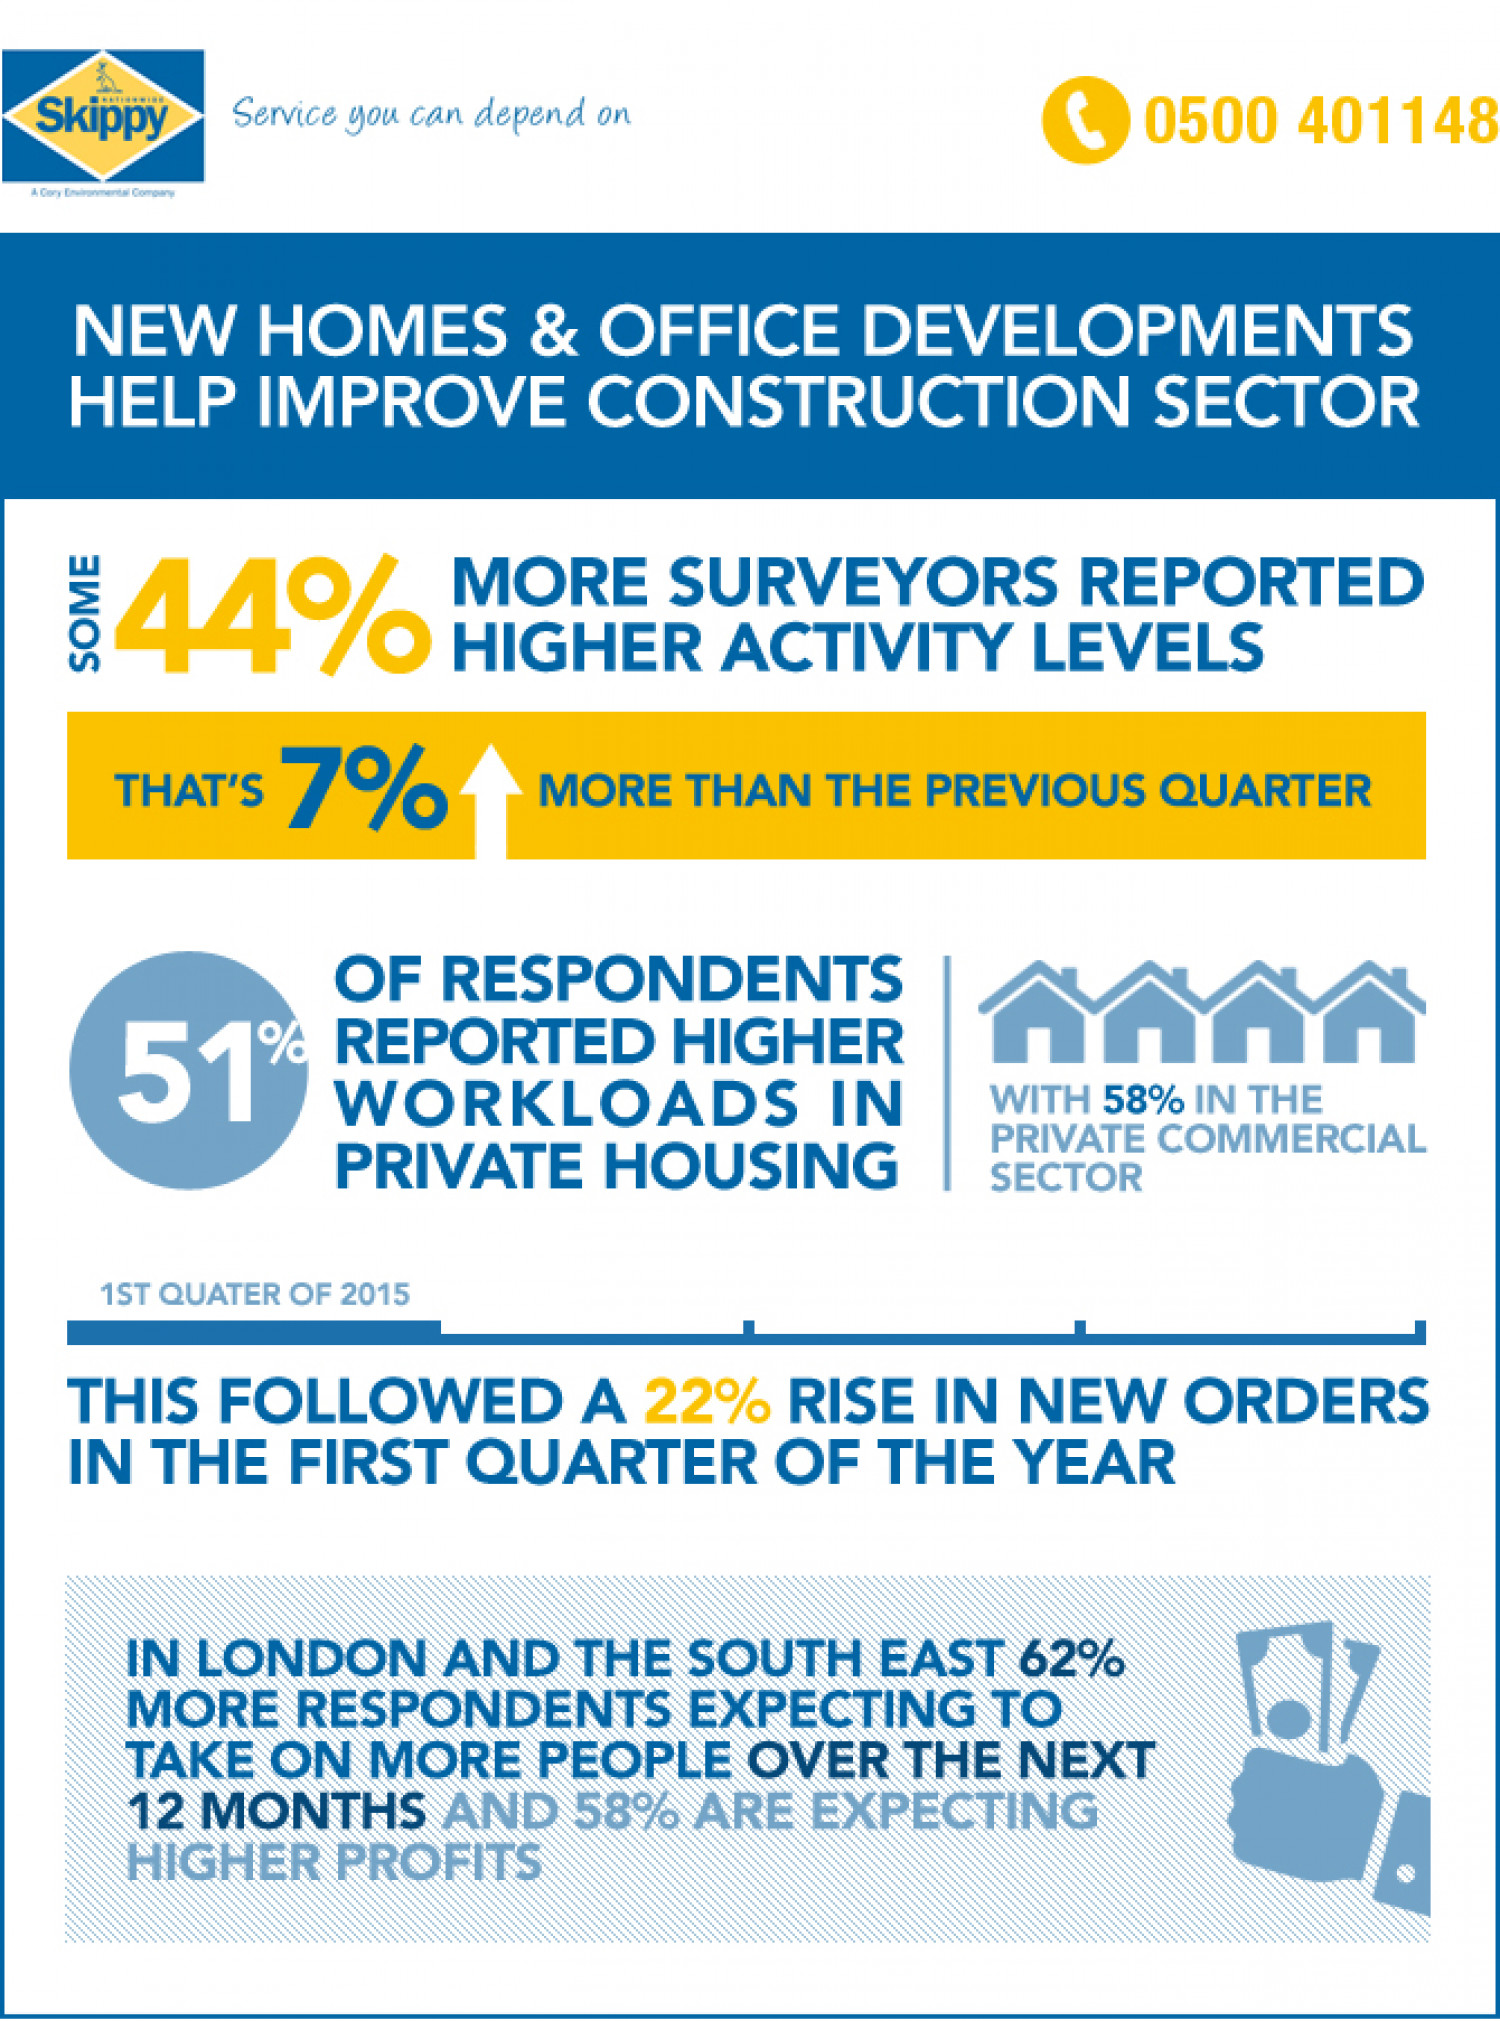 New homes and office developments to help improve the construction sector  Infographic